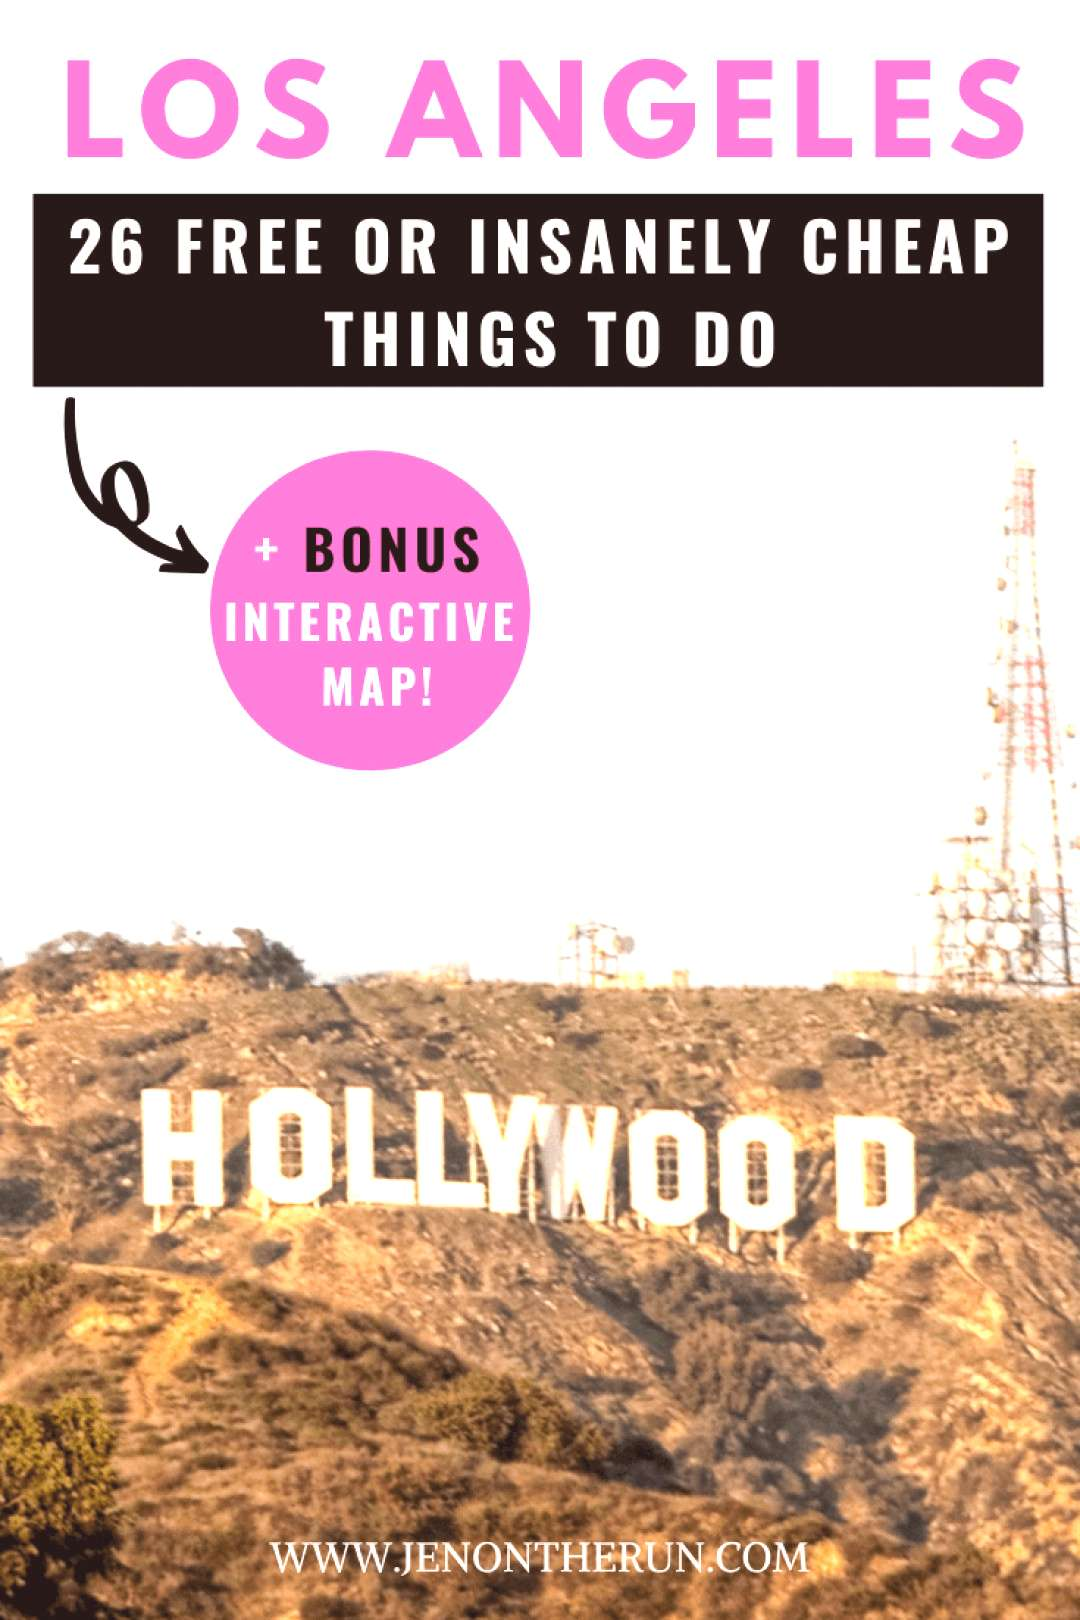 26 Free or Insanely Cheap Things to do in Los Angeles - Jen on the Run Visiting Los Angeles, Califo